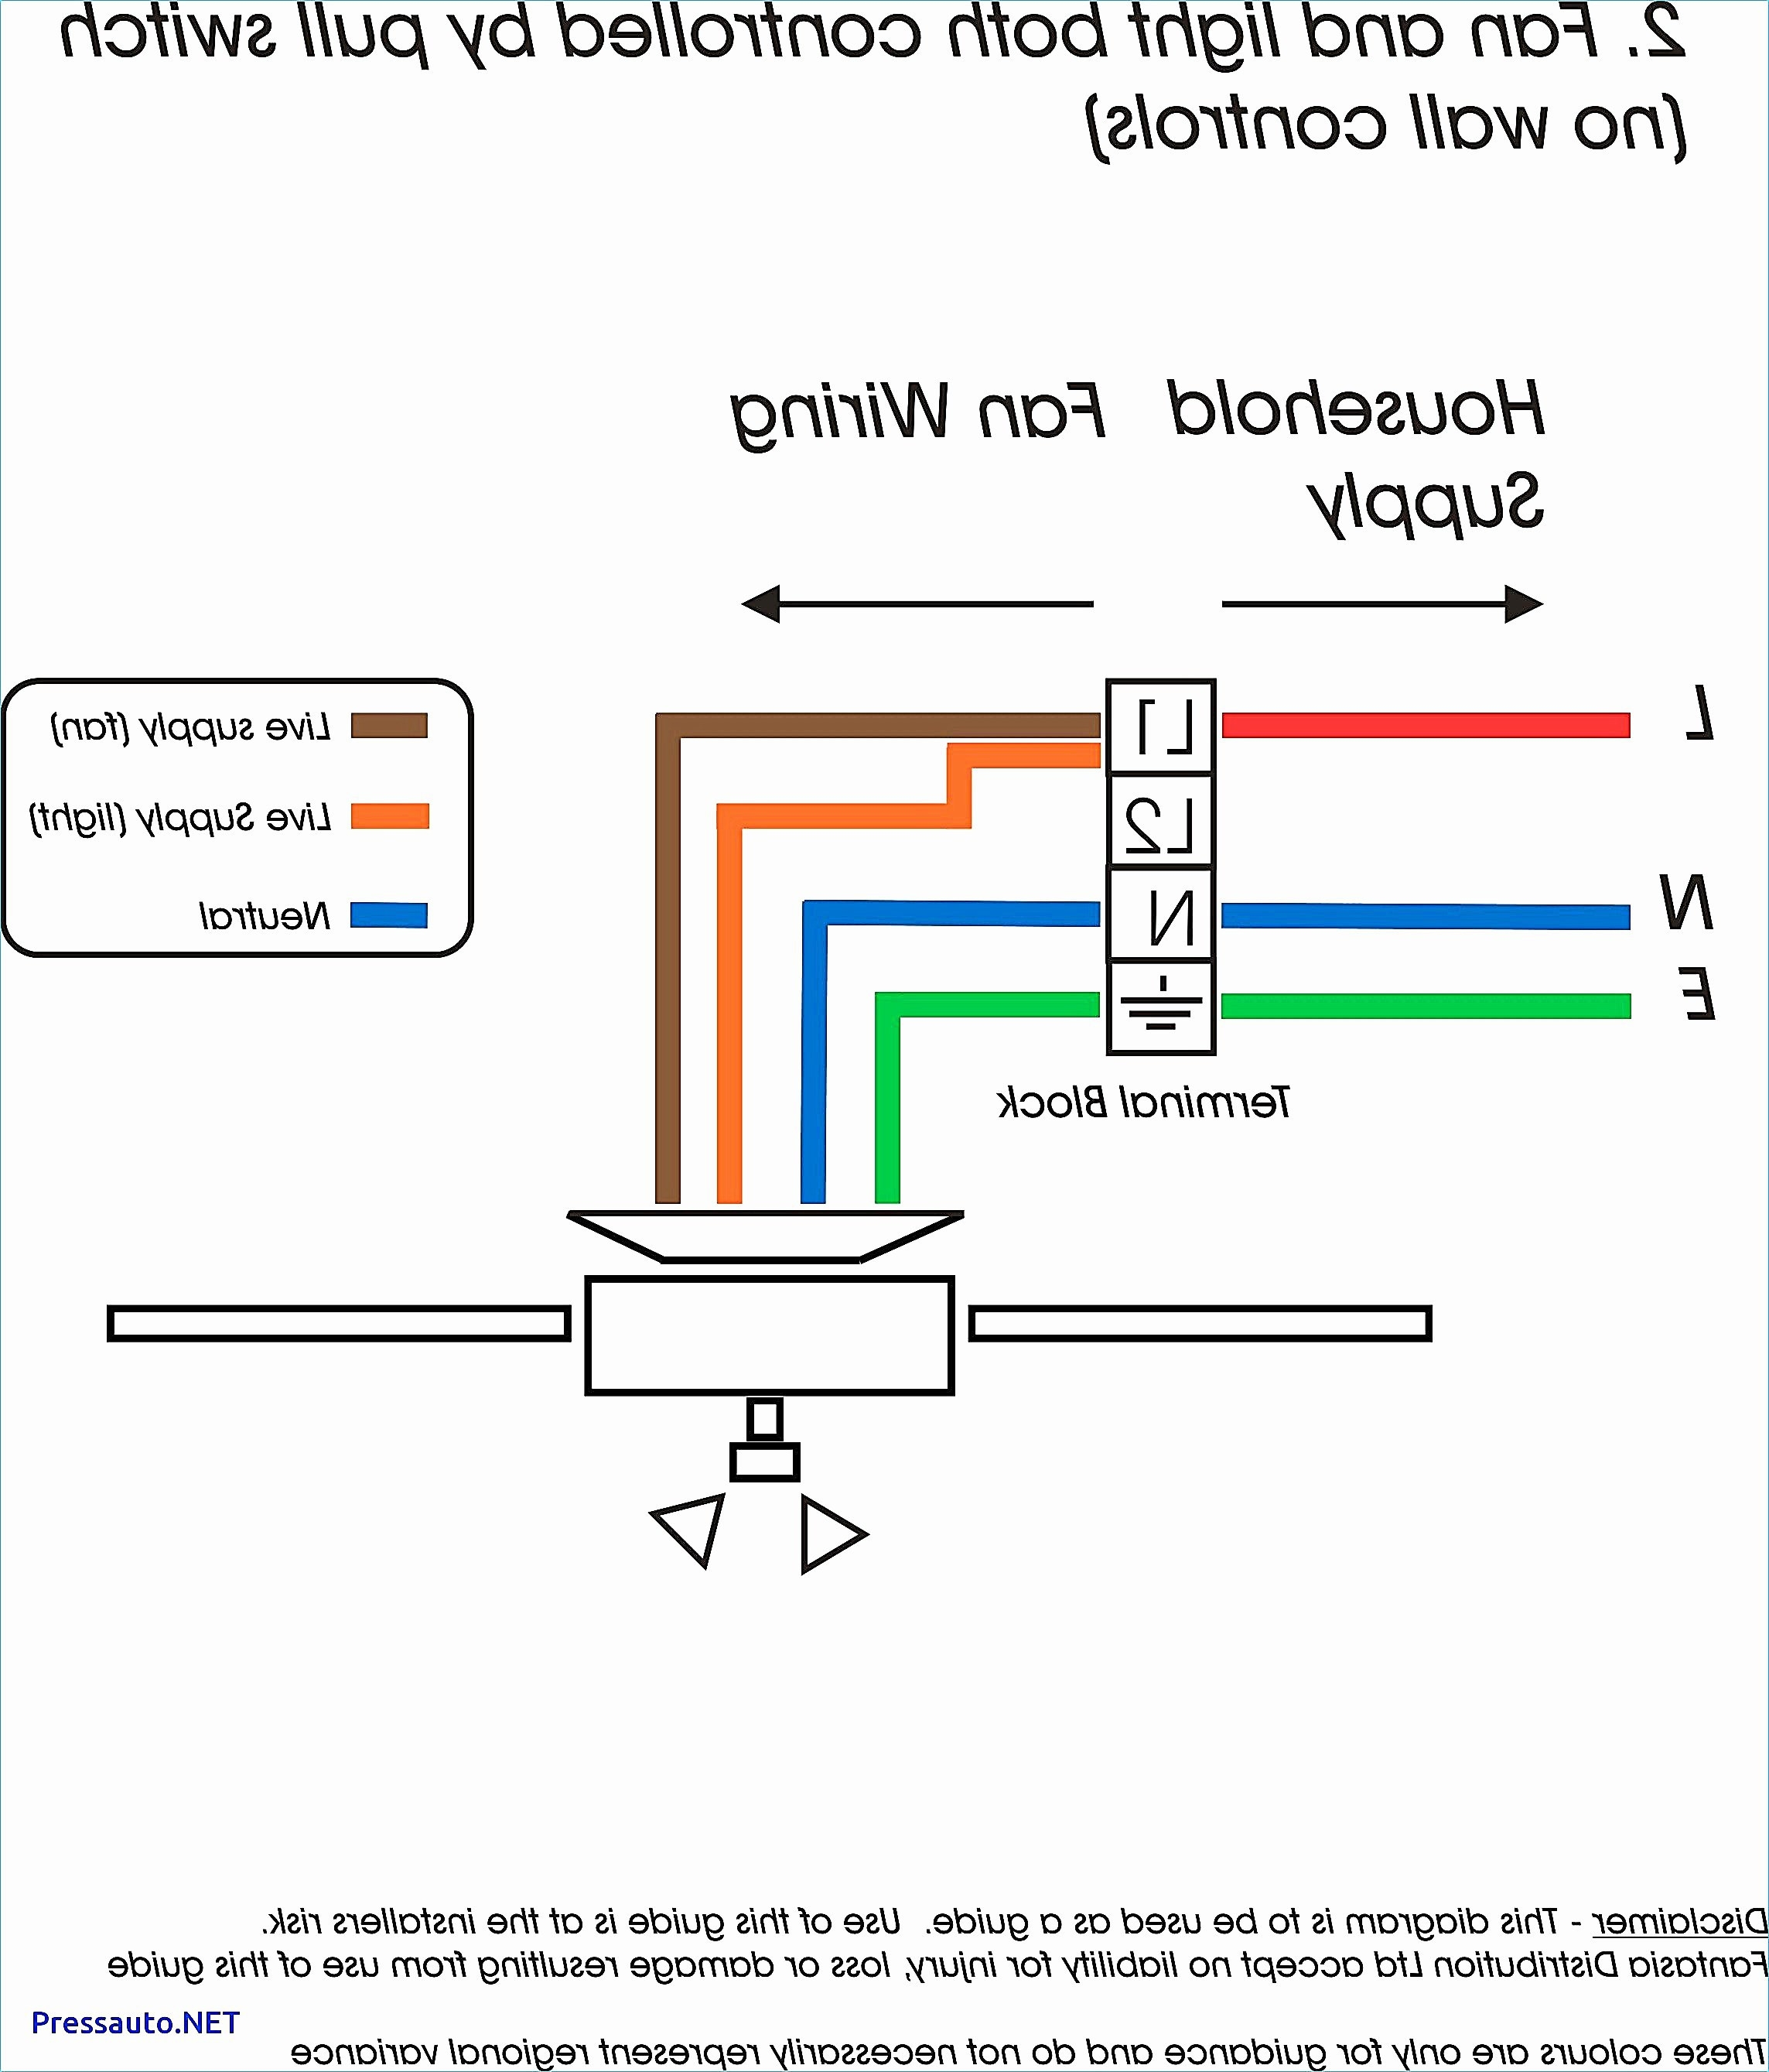 bathroom light wiring diagram Download-Wiring Diagram For Bathroom Mirror Inspirational Wiring Diagram For Double Pole Light Switch Free Download In Wall 13-n